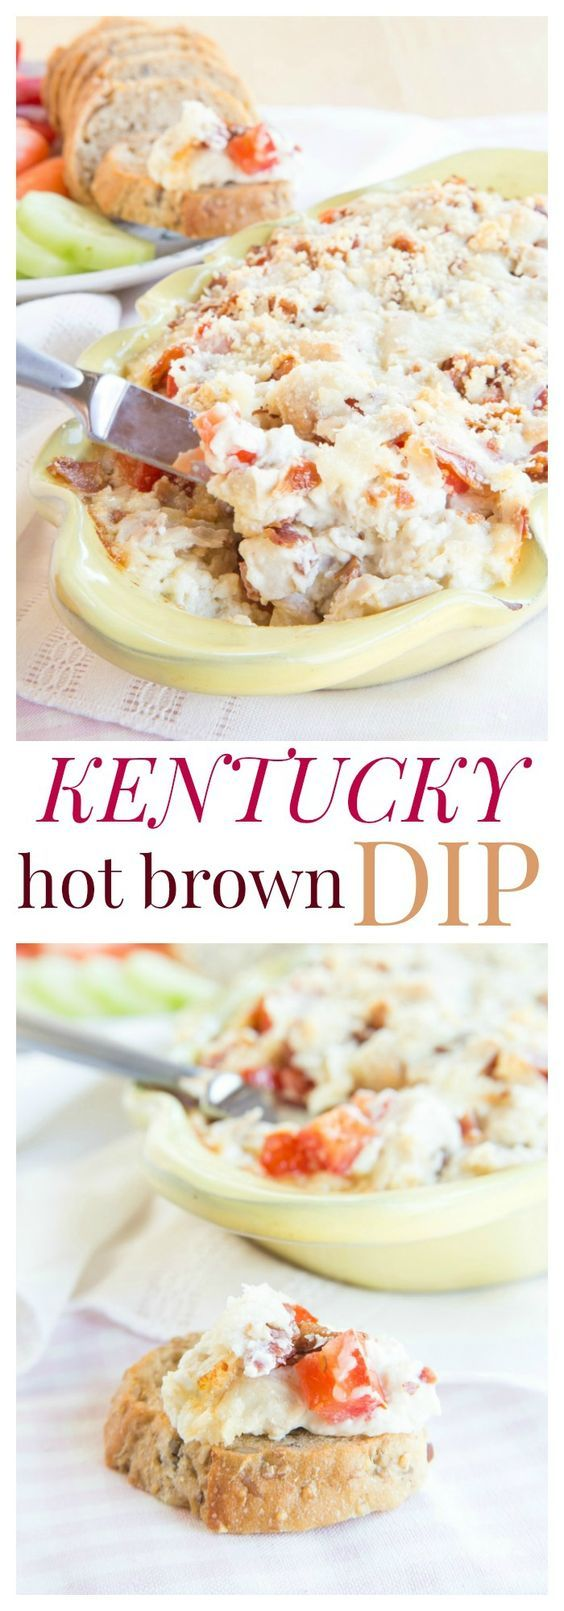 Kentucky Hot Brown Dip  - filled with turkey, bacon and cheese, this hot dip takes the best part of the classic Southern sandwich and transforms it into a gooey appetizer. | cupcakesandkalechips.com | gluten free recipe